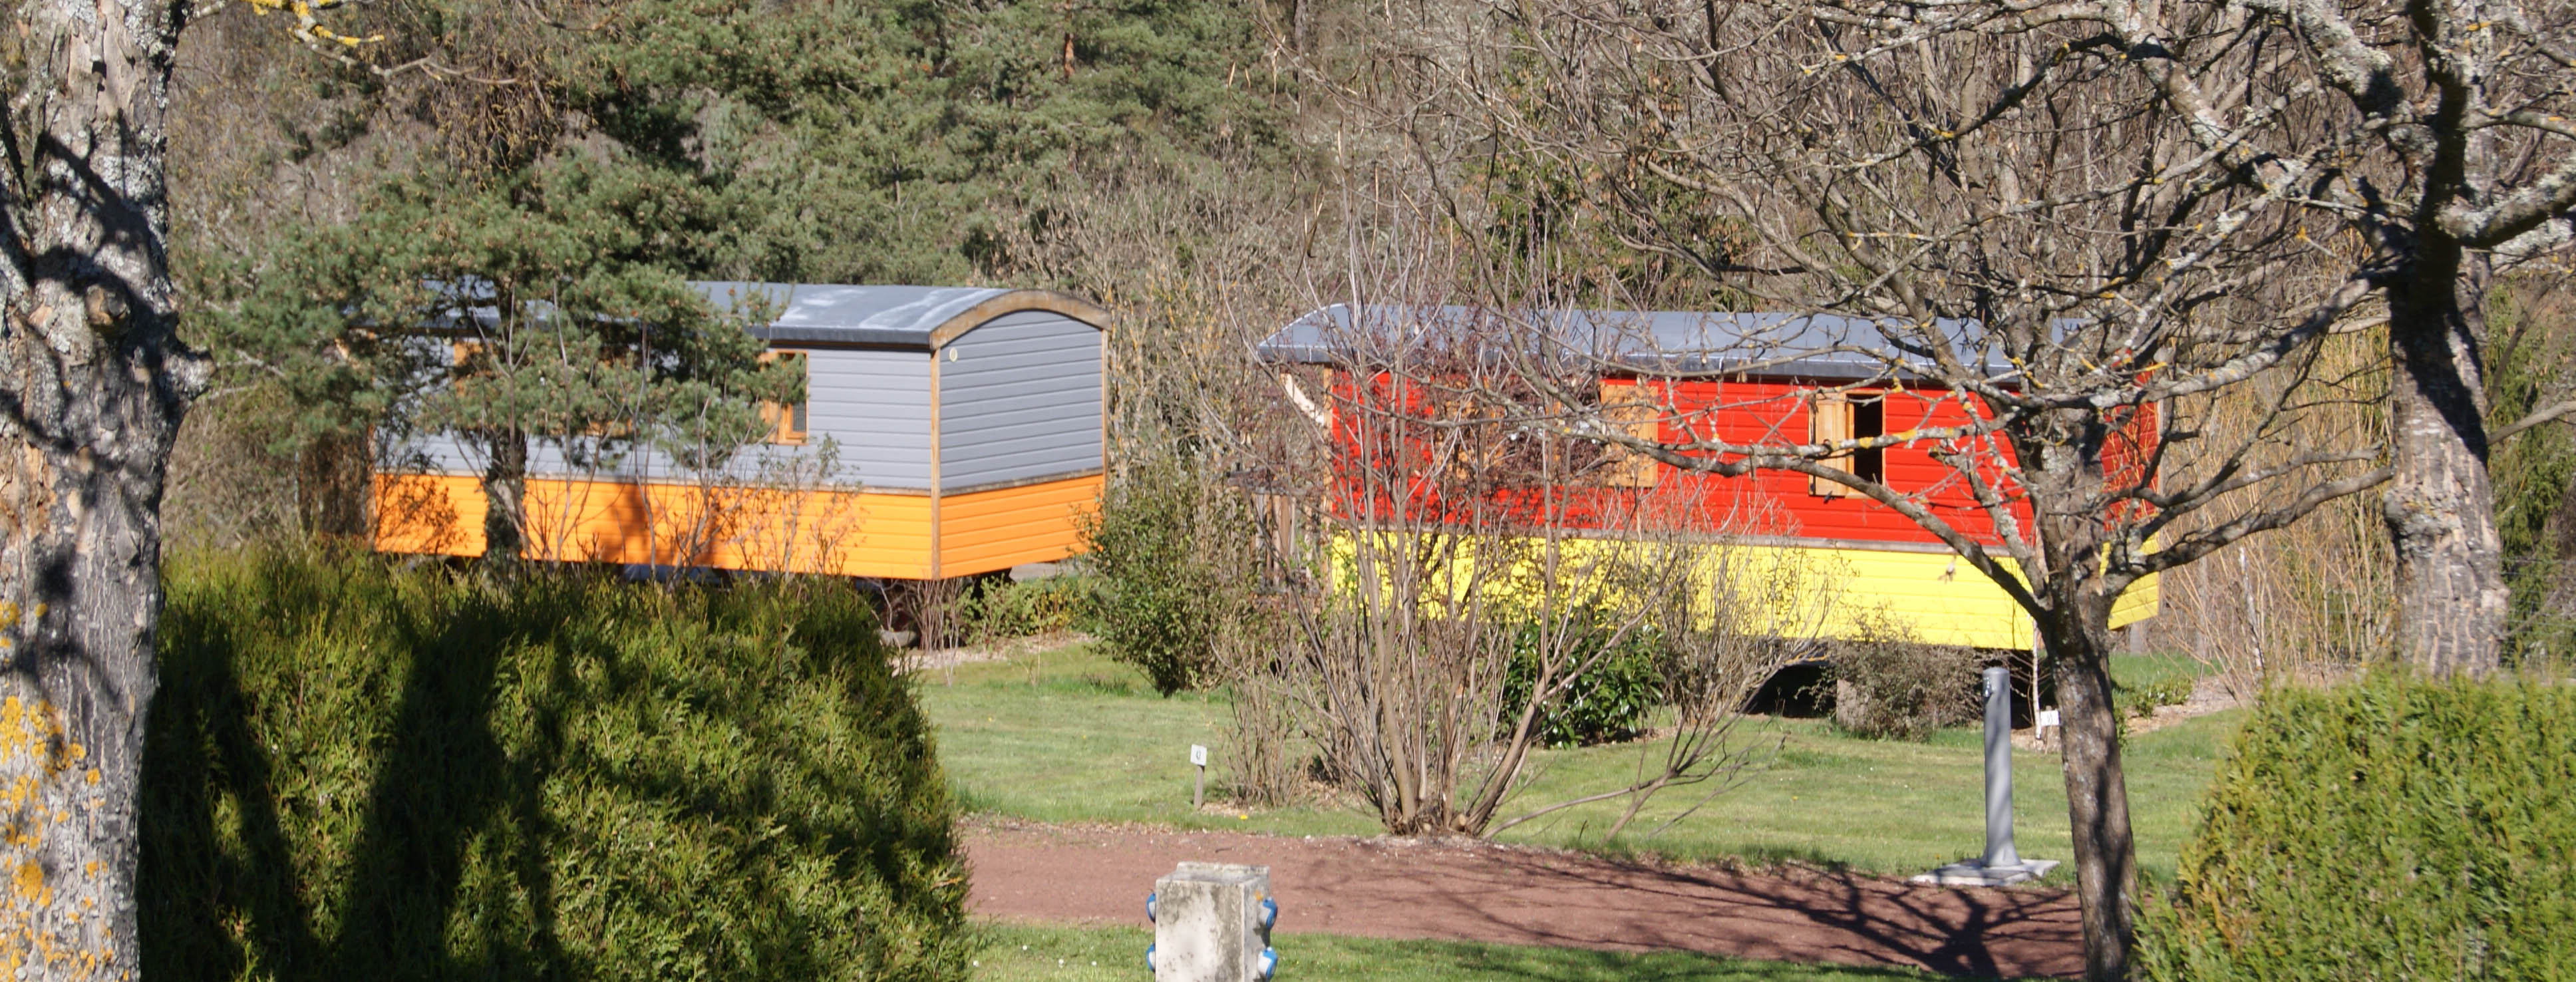 Roulottes mobiles camping